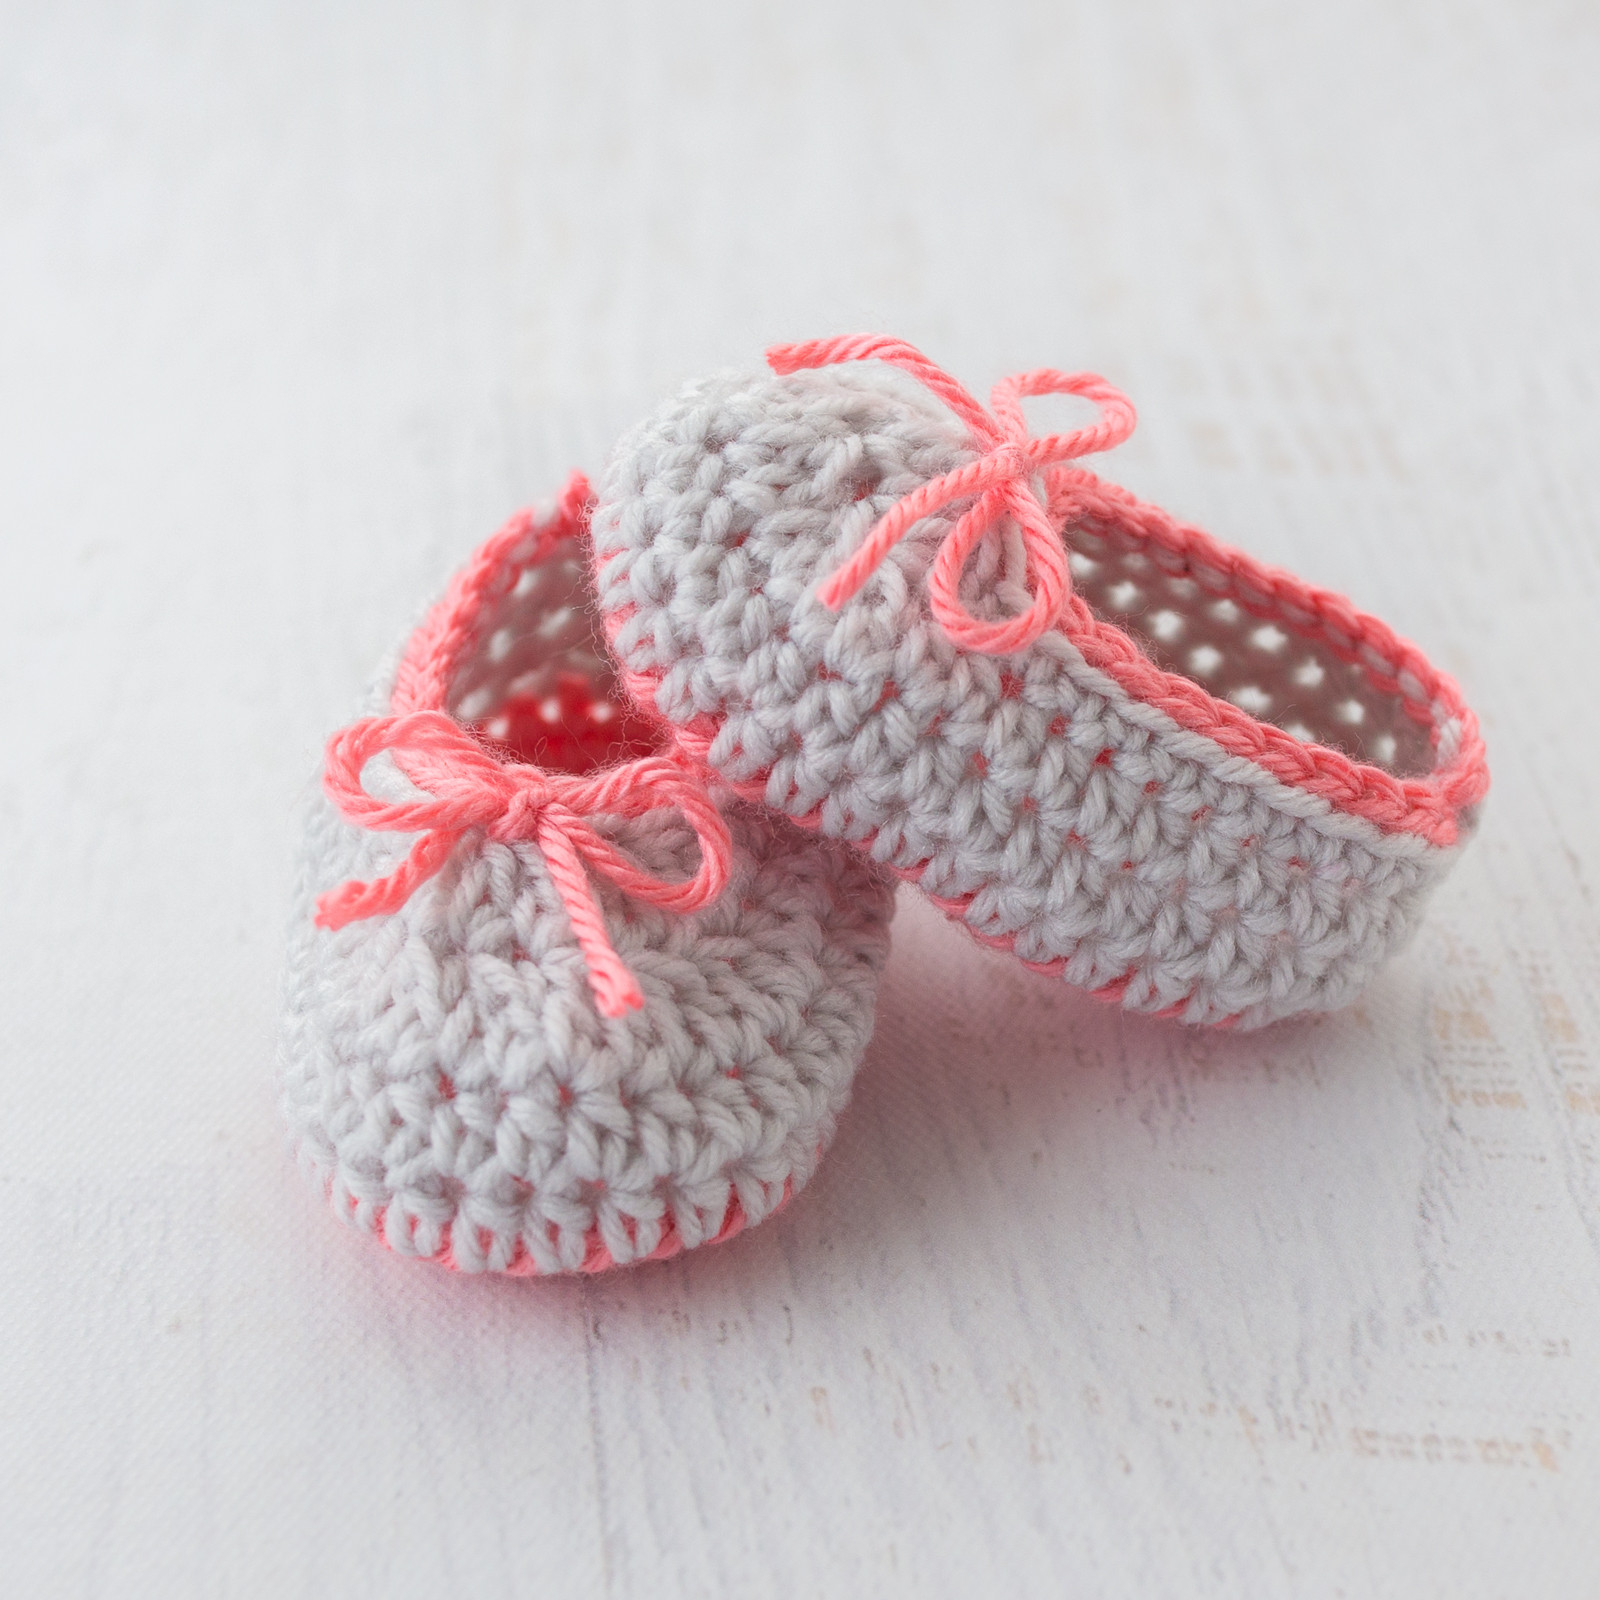 Luxury Crochet Baby Shoe sole Pattern Crochet Baby Shoes Pattern Of Delightful 50 Pictures Crochet Baby Shoes Pattern